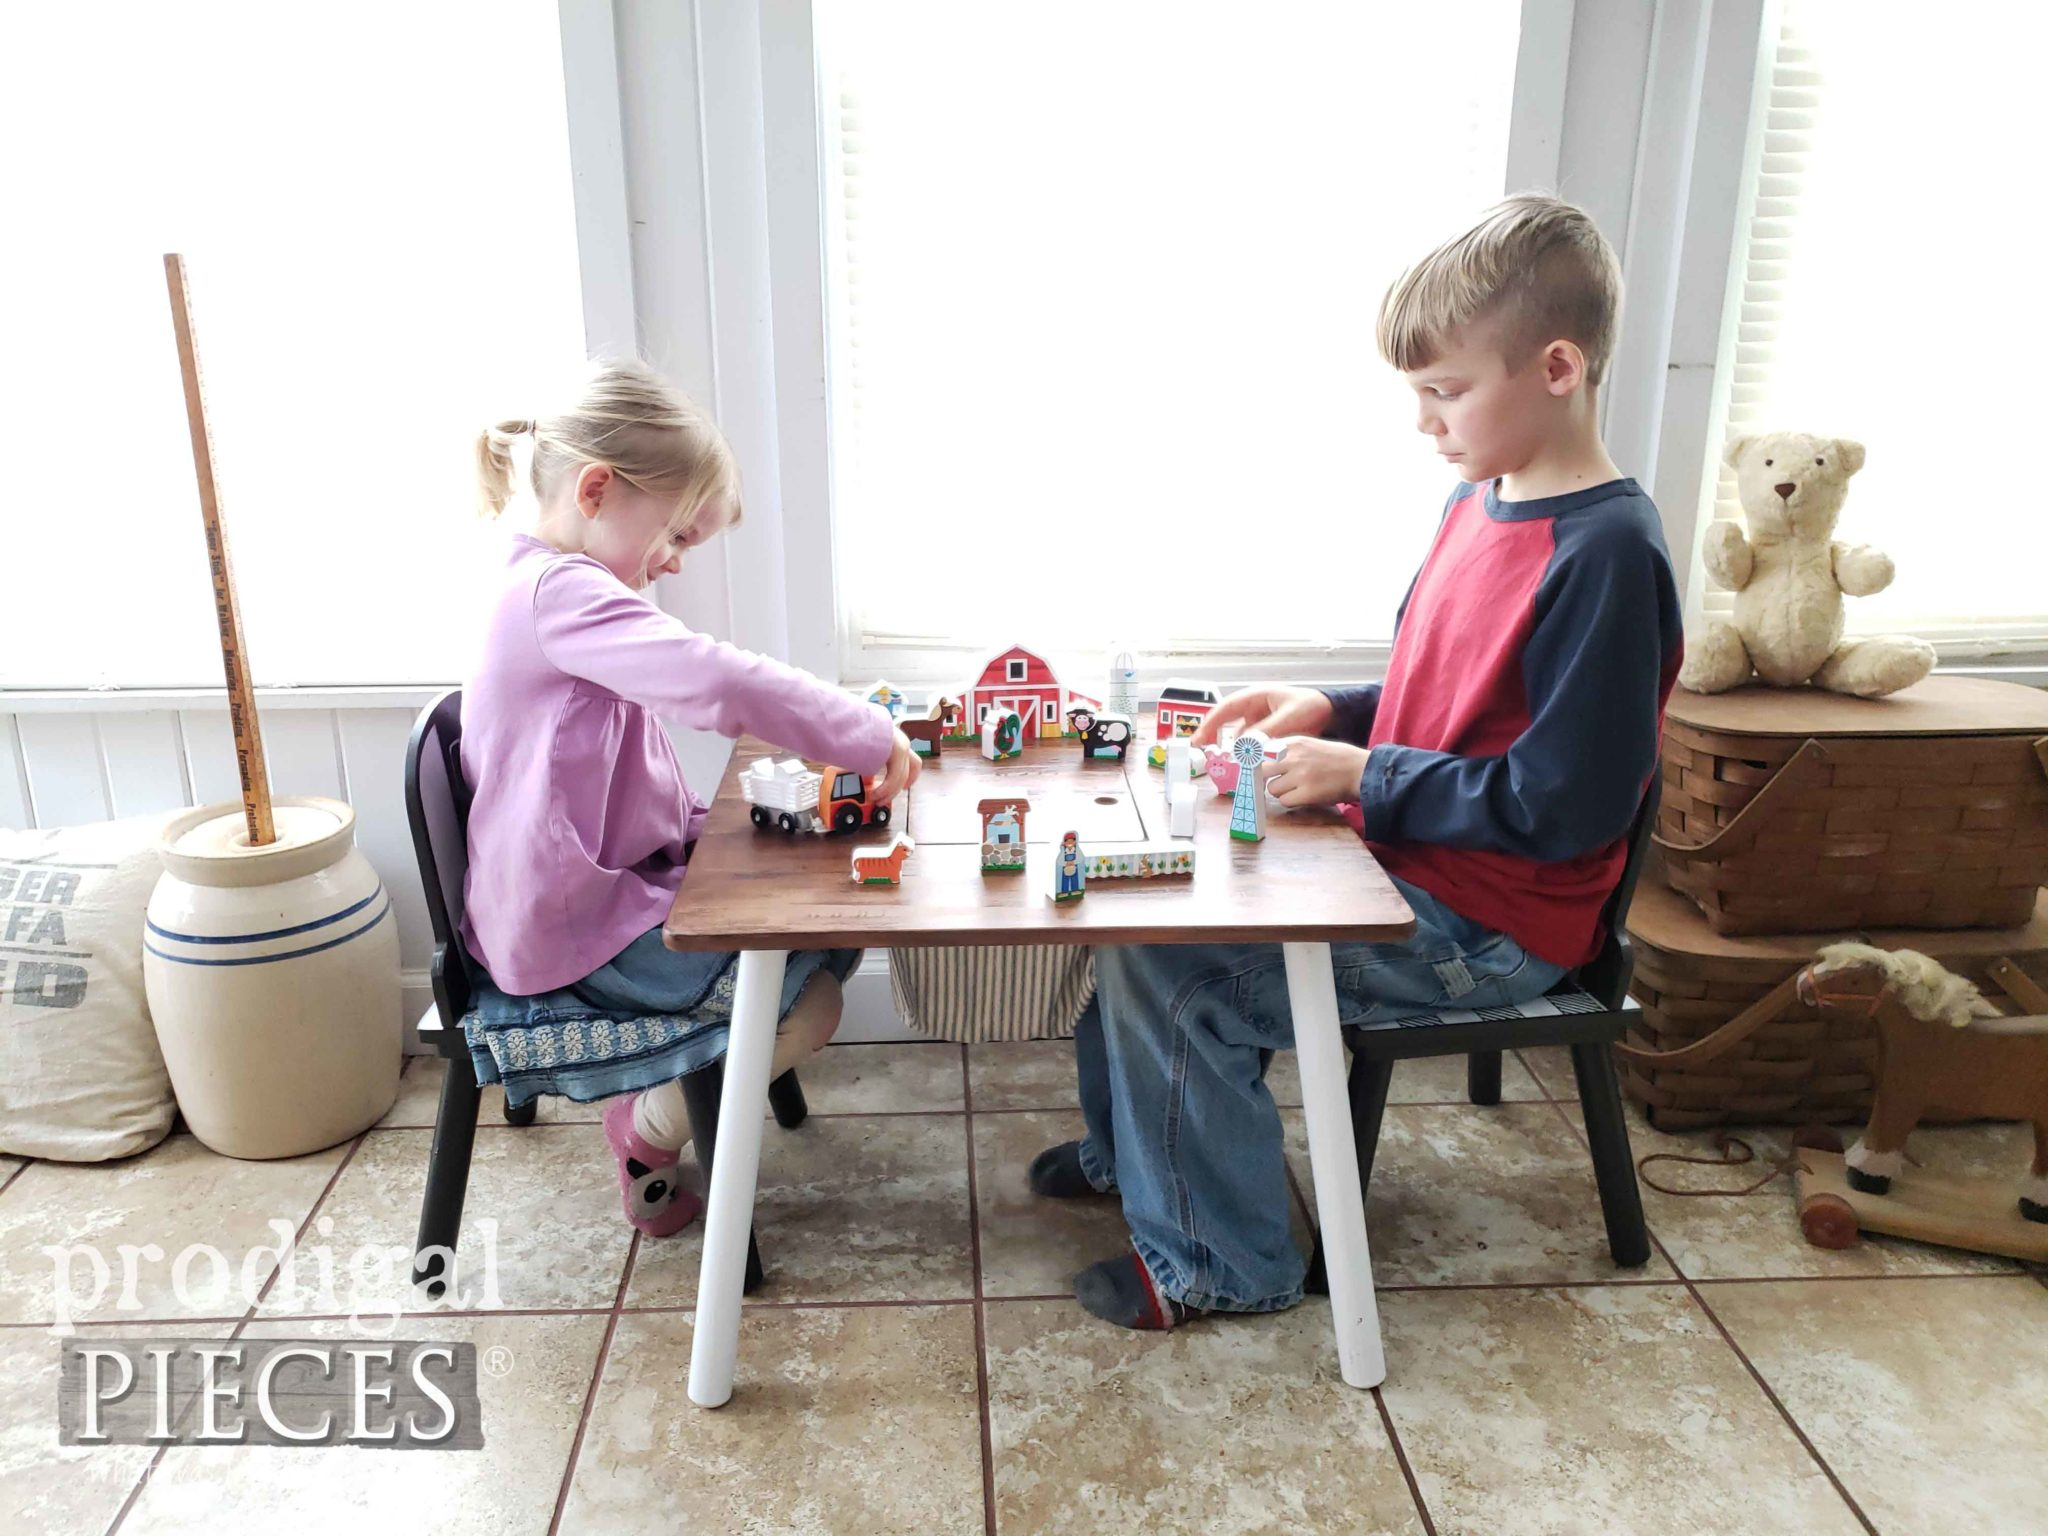 Mini Farmhouse Kids Play Table with Farm Play Set by Larissa of Prodigal Pieces | prodigalpieces.com